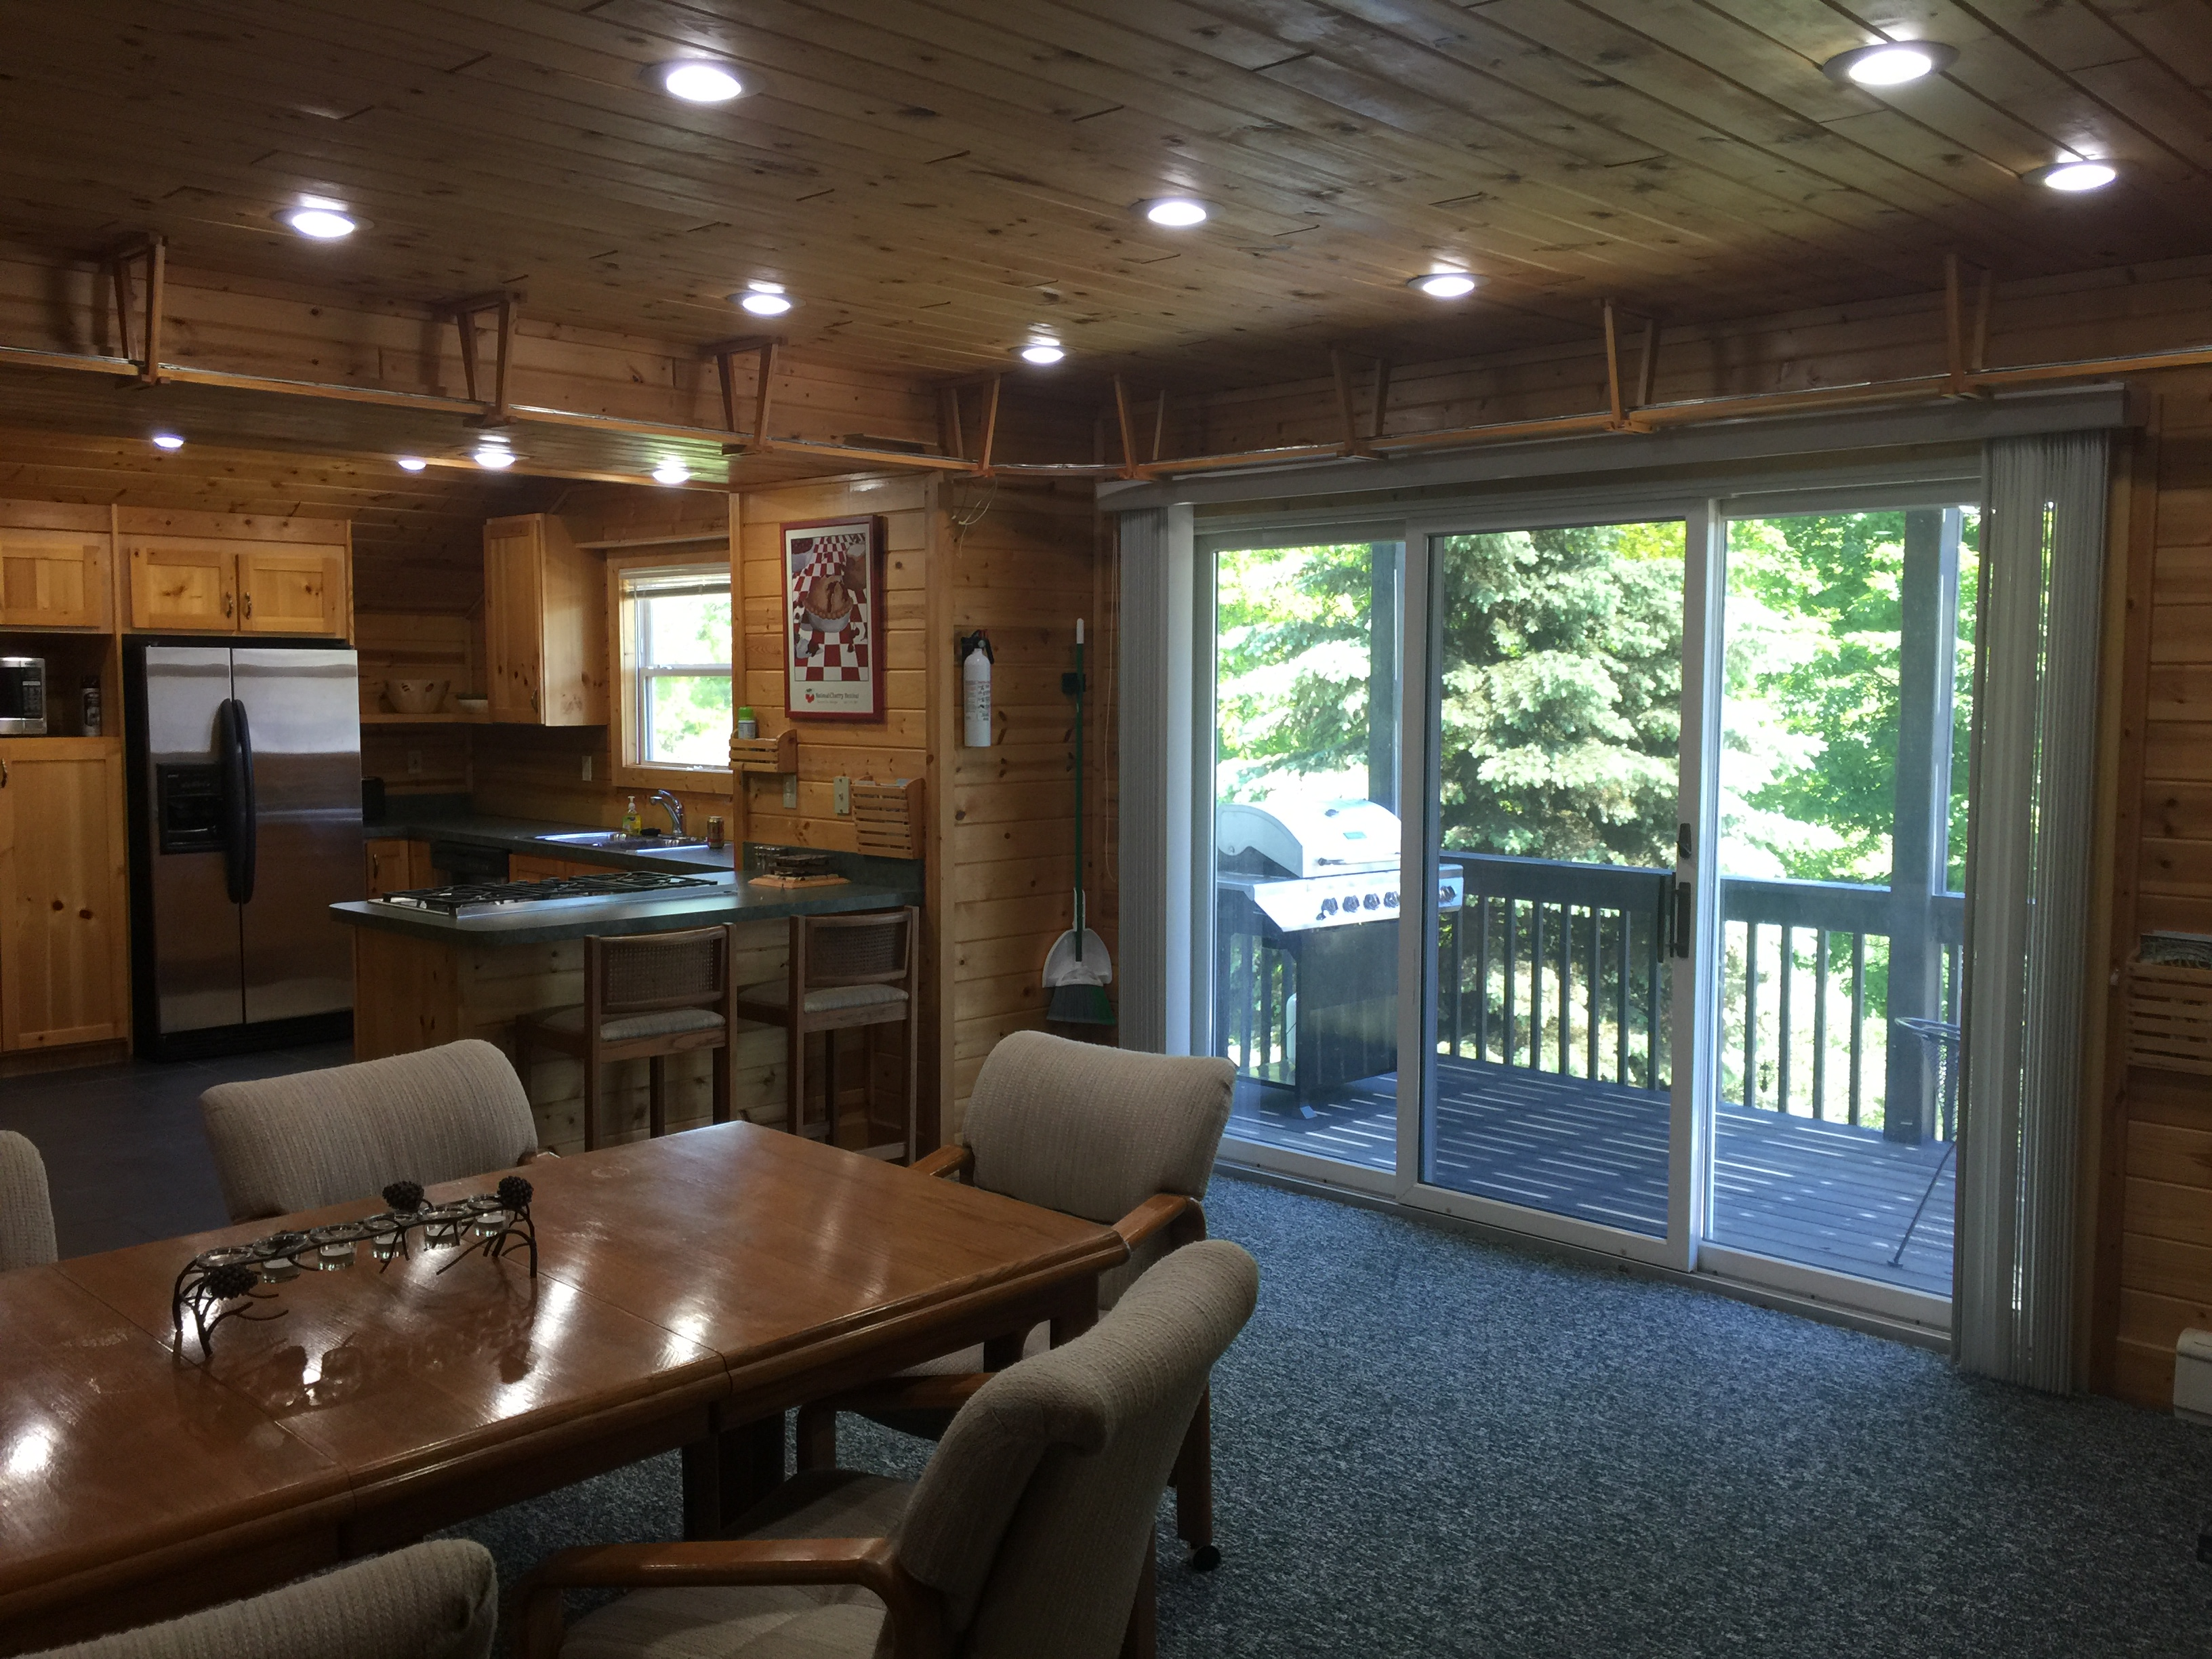 2nd floor deck with grill, chairs and table at Torch Lake Lodge